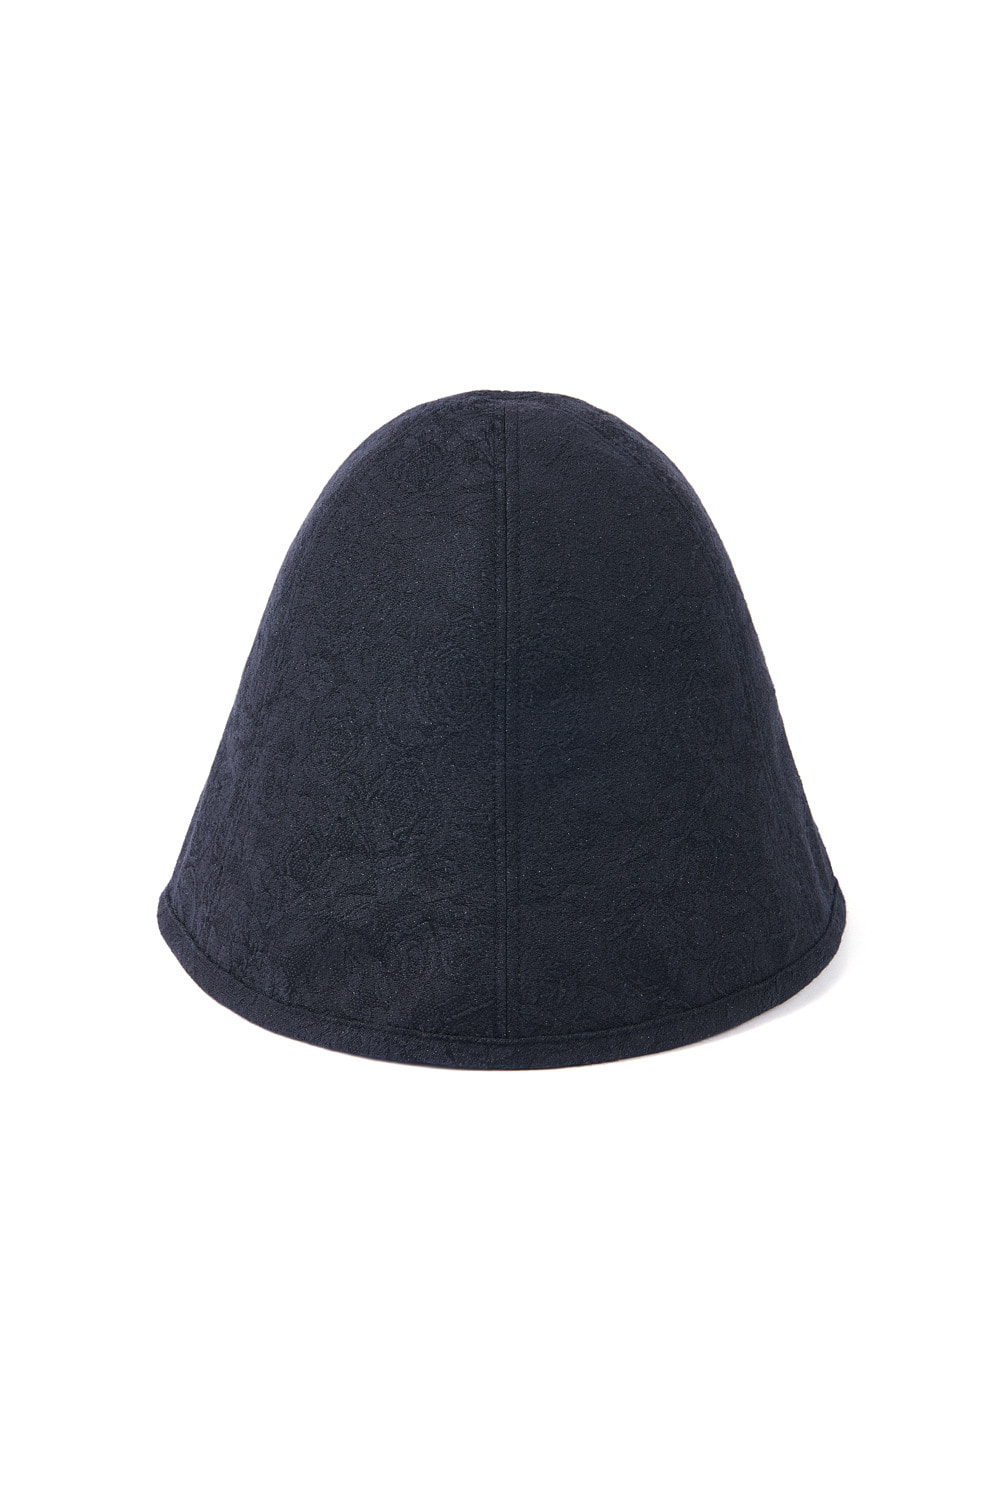 JACQUARD SLIT CLOCHE HAT_black rose